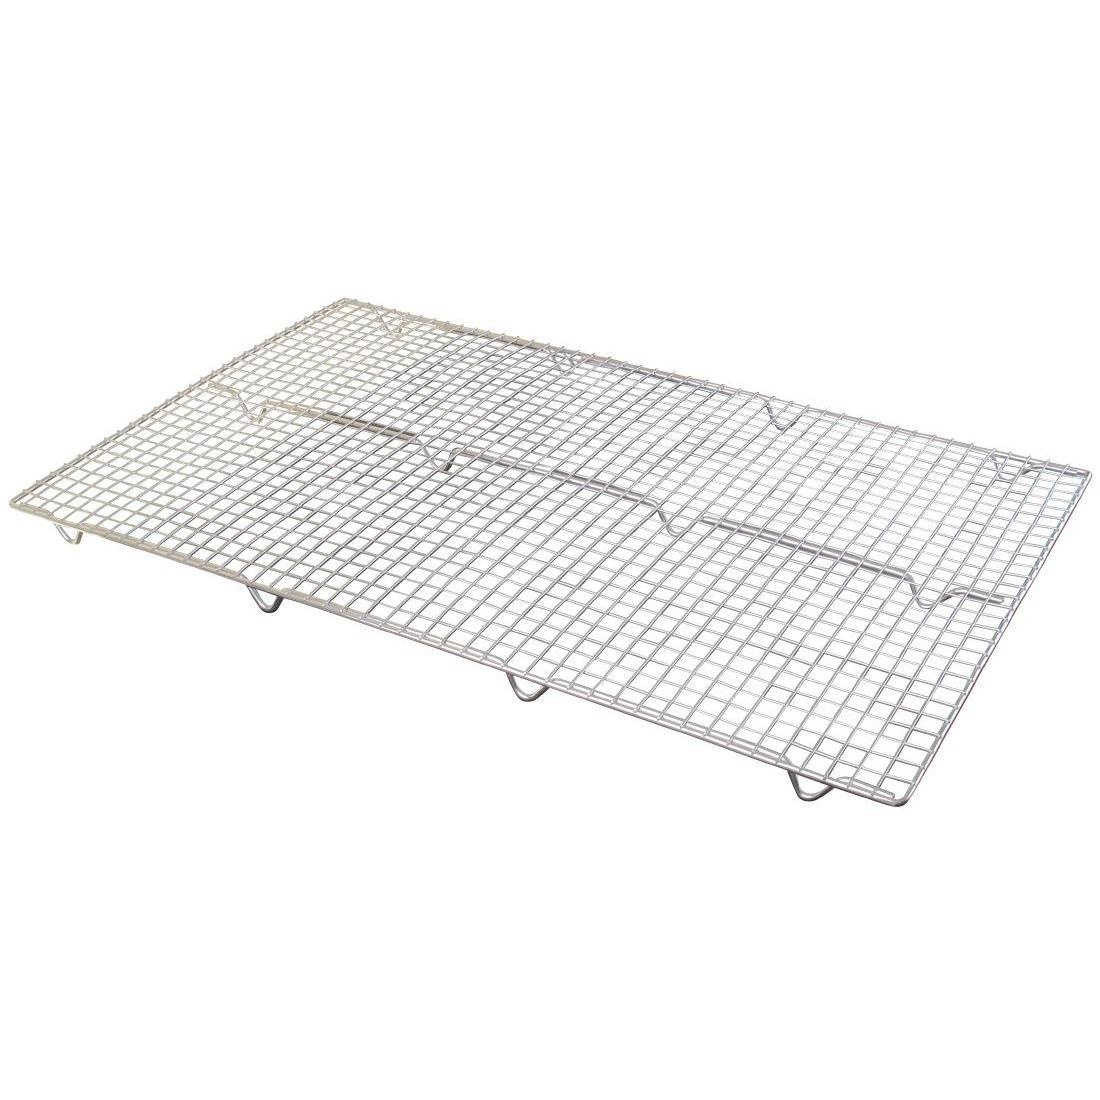 Vogue Heavy Duty Cooling Rack 635 x 406mm - Each - J811